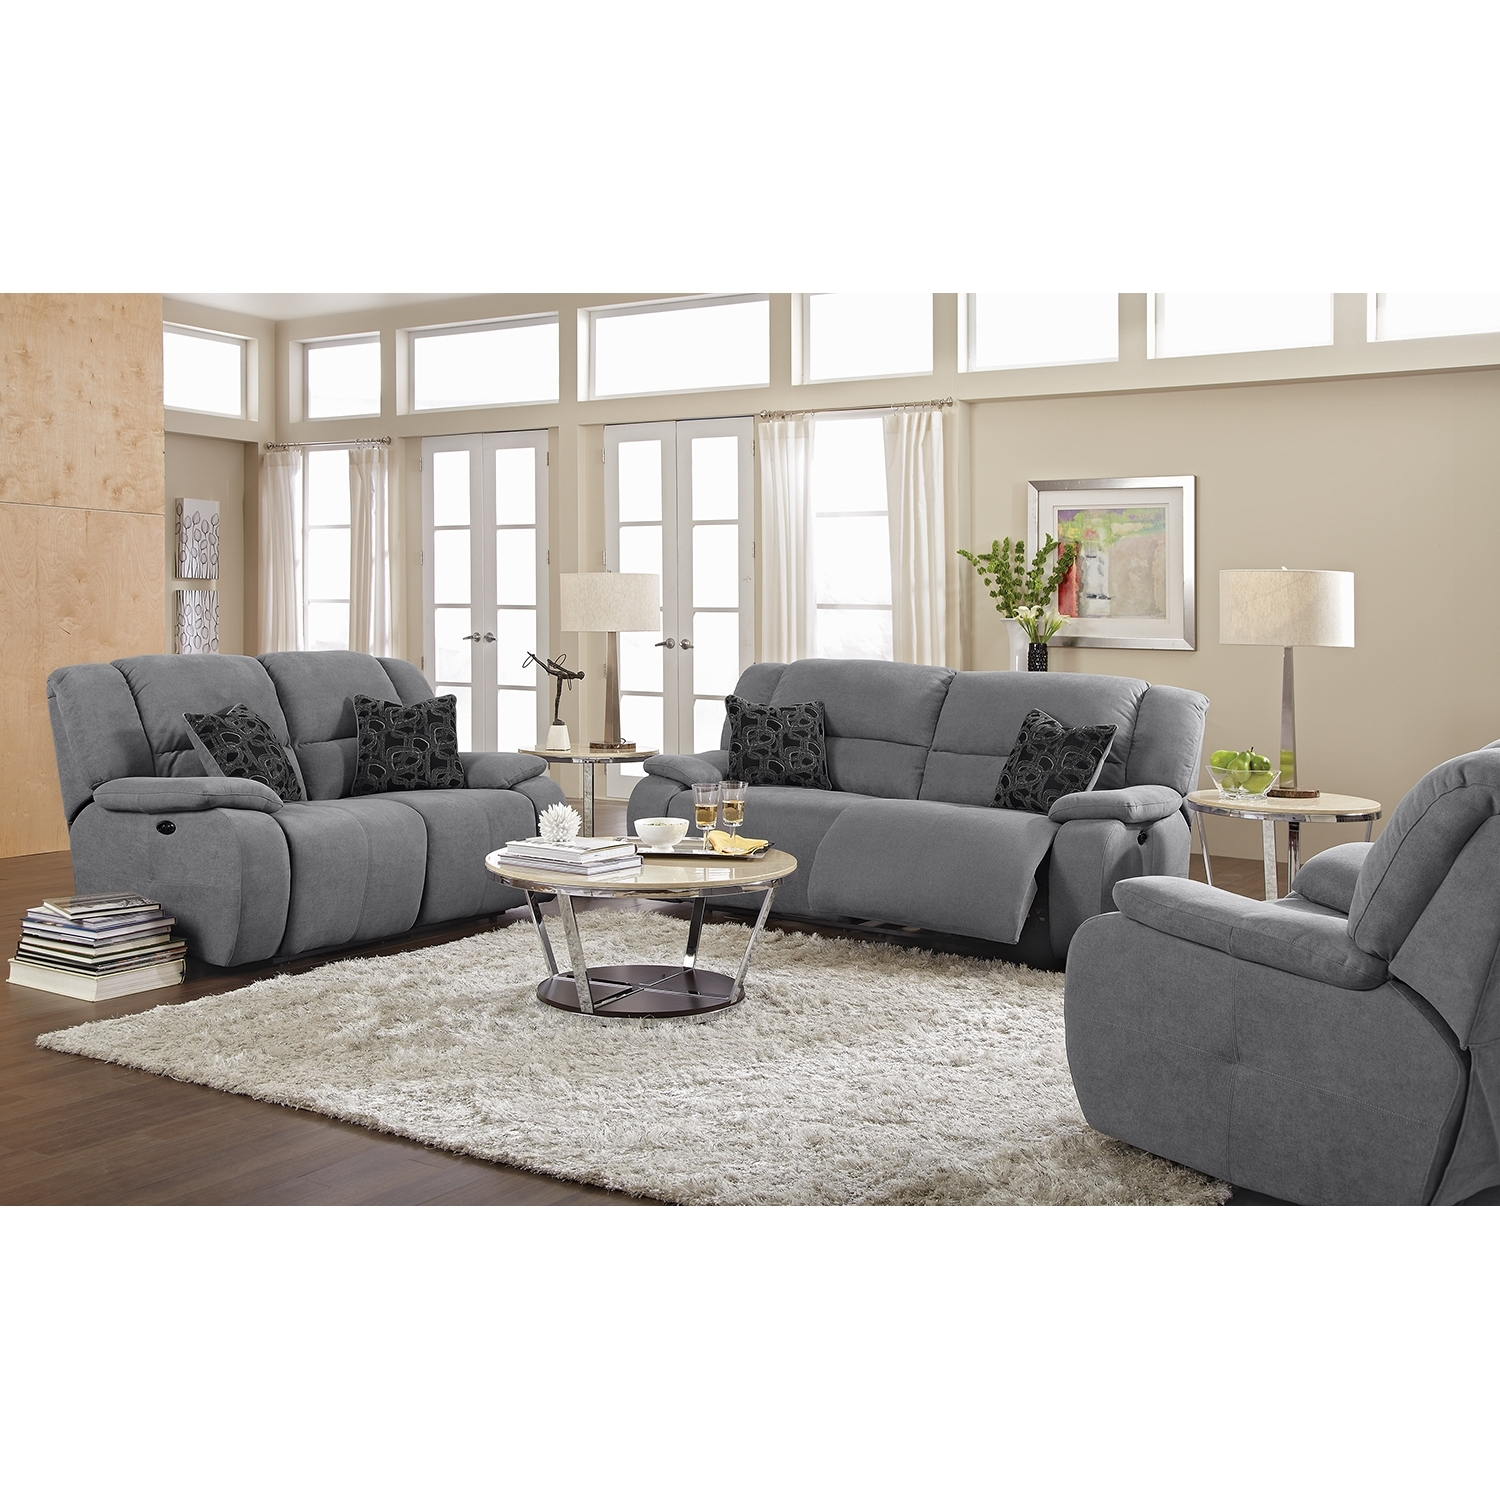 Sofas Center Gray Reclining Sofa Newport Piece Power Value City With Regard To Newport Sofas (Image 14 of 15)